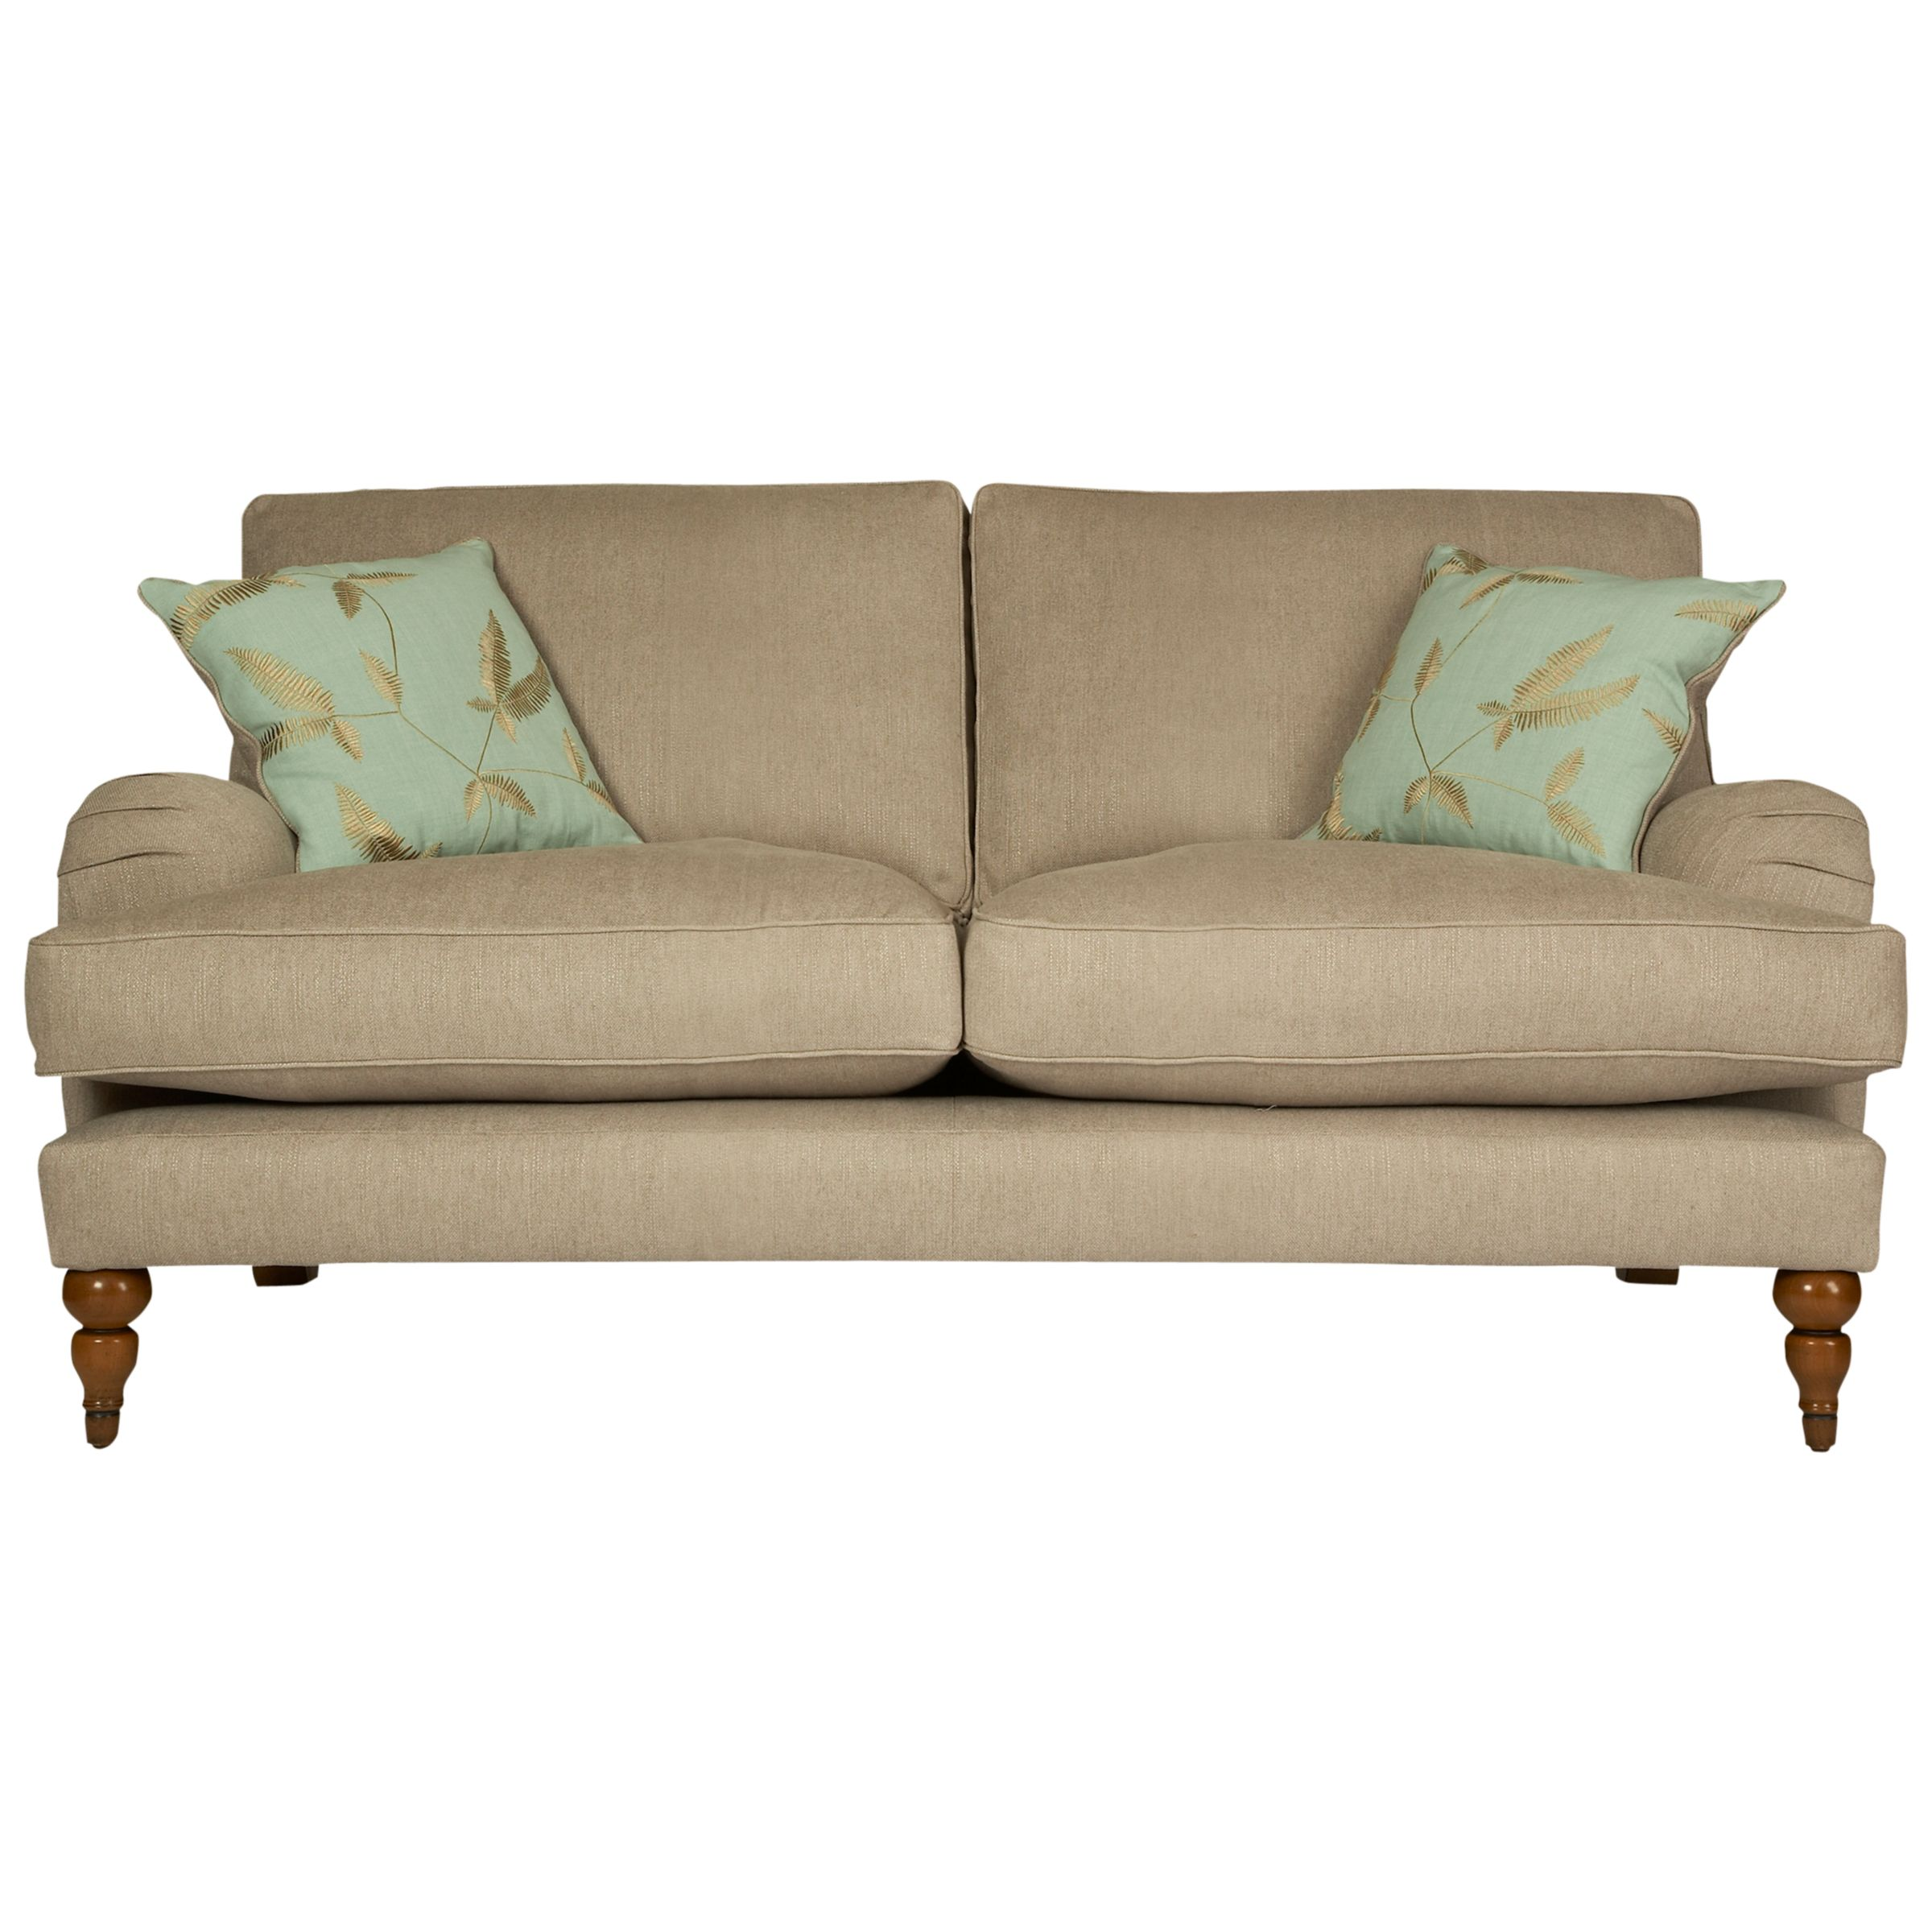 John Lewis Penryn Small Sofa, Aiden Smoke